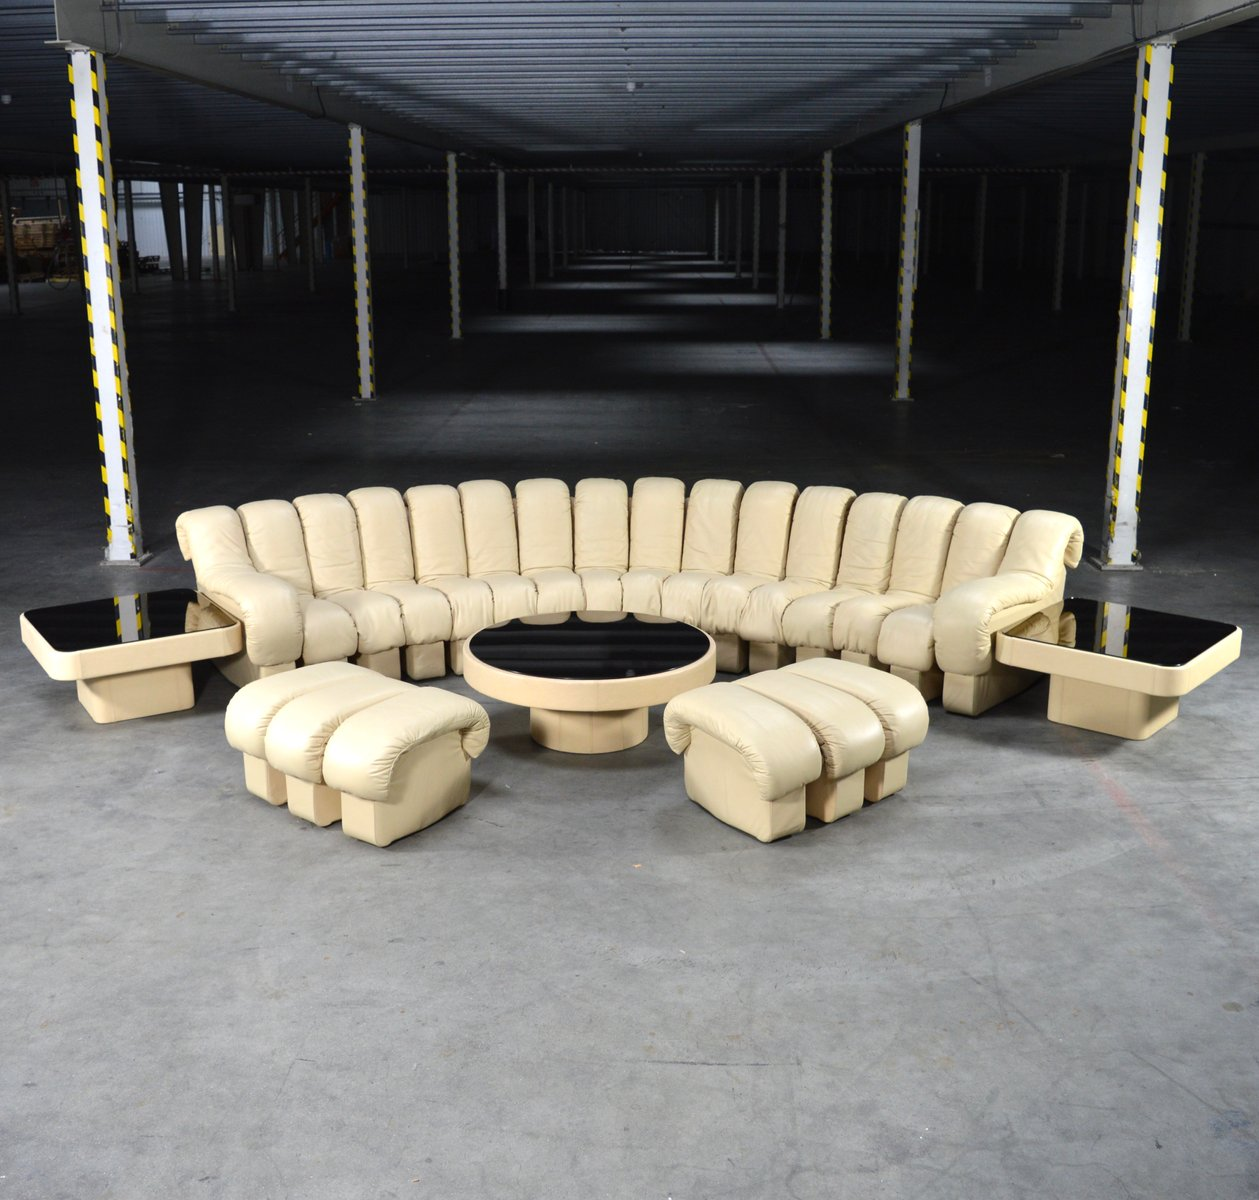 Ds600 Snake Non Stop Sectional Sofa Set By Peduzzi Riva